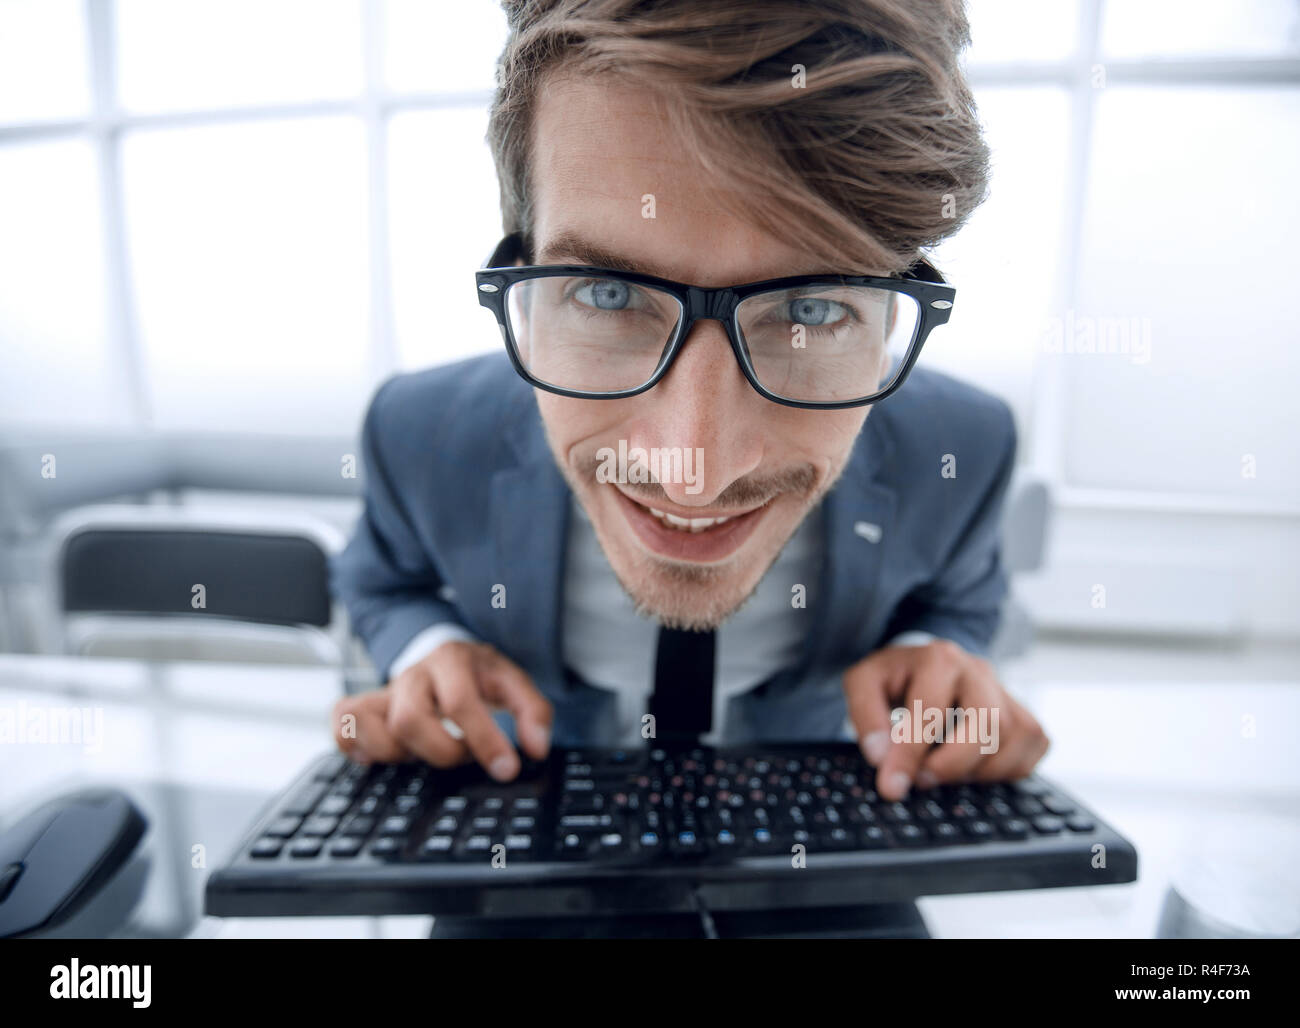 Crazy looking man typing on the keyboard - Stock Image